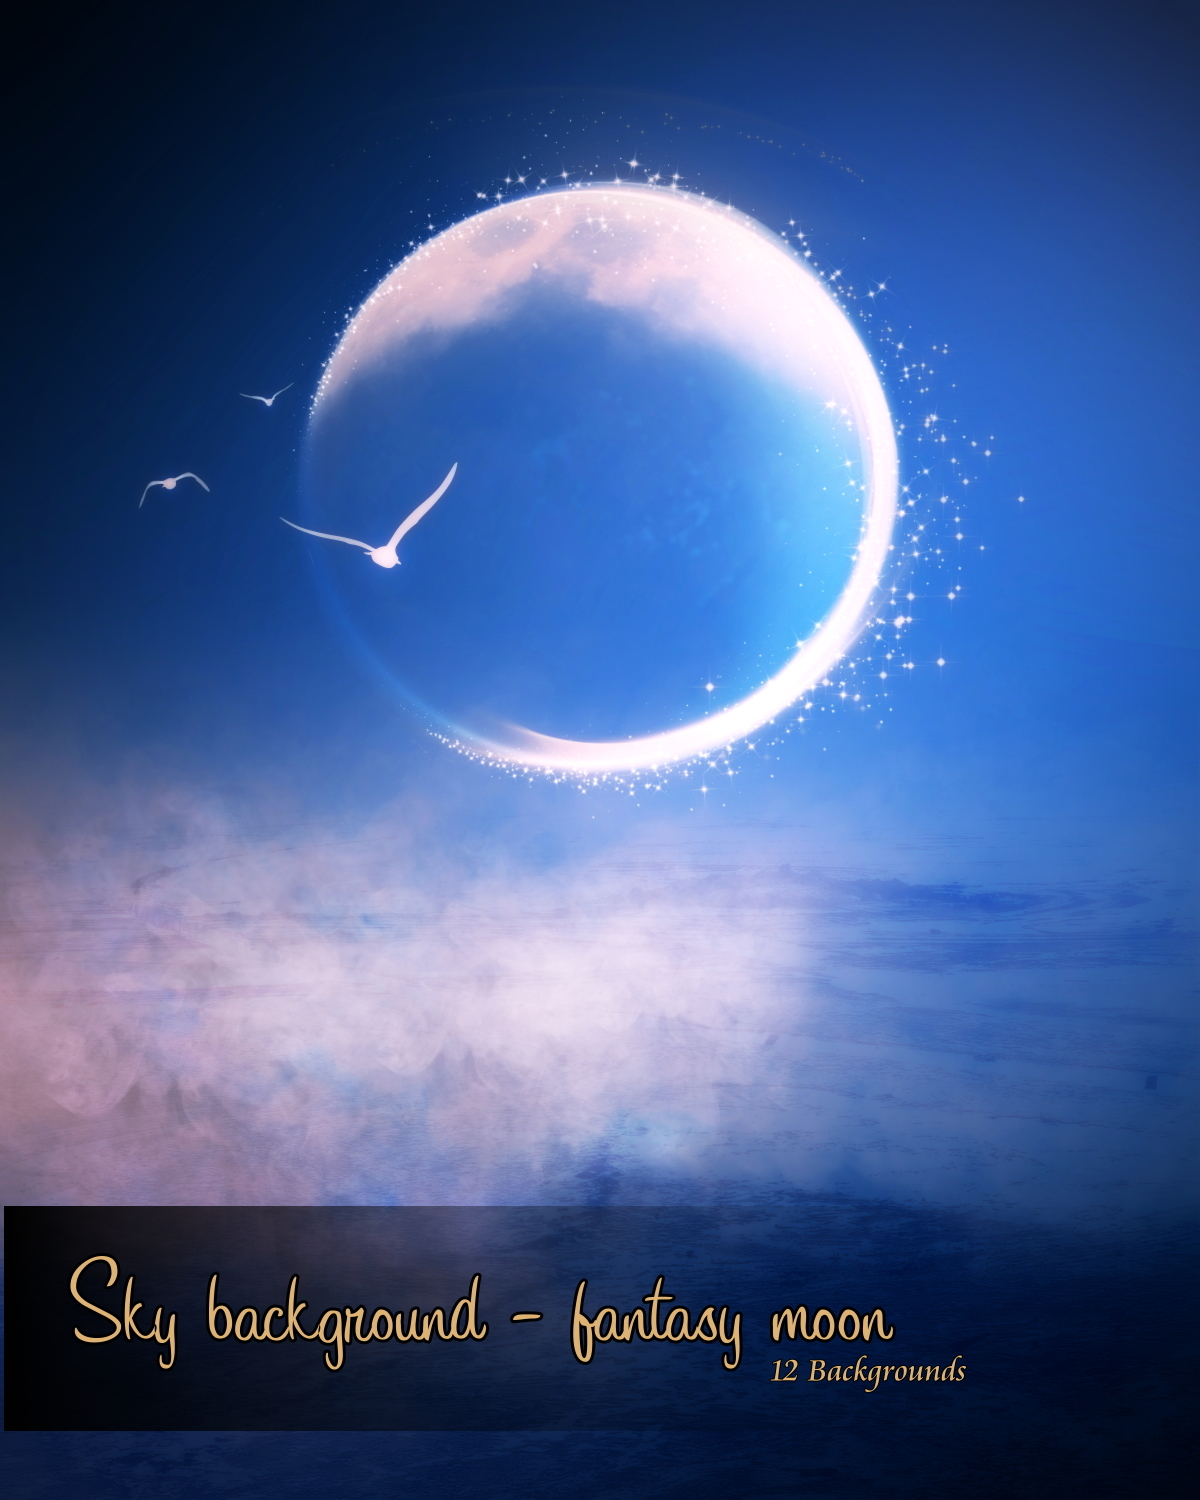 Sky background - fantasy moon by hexe2009